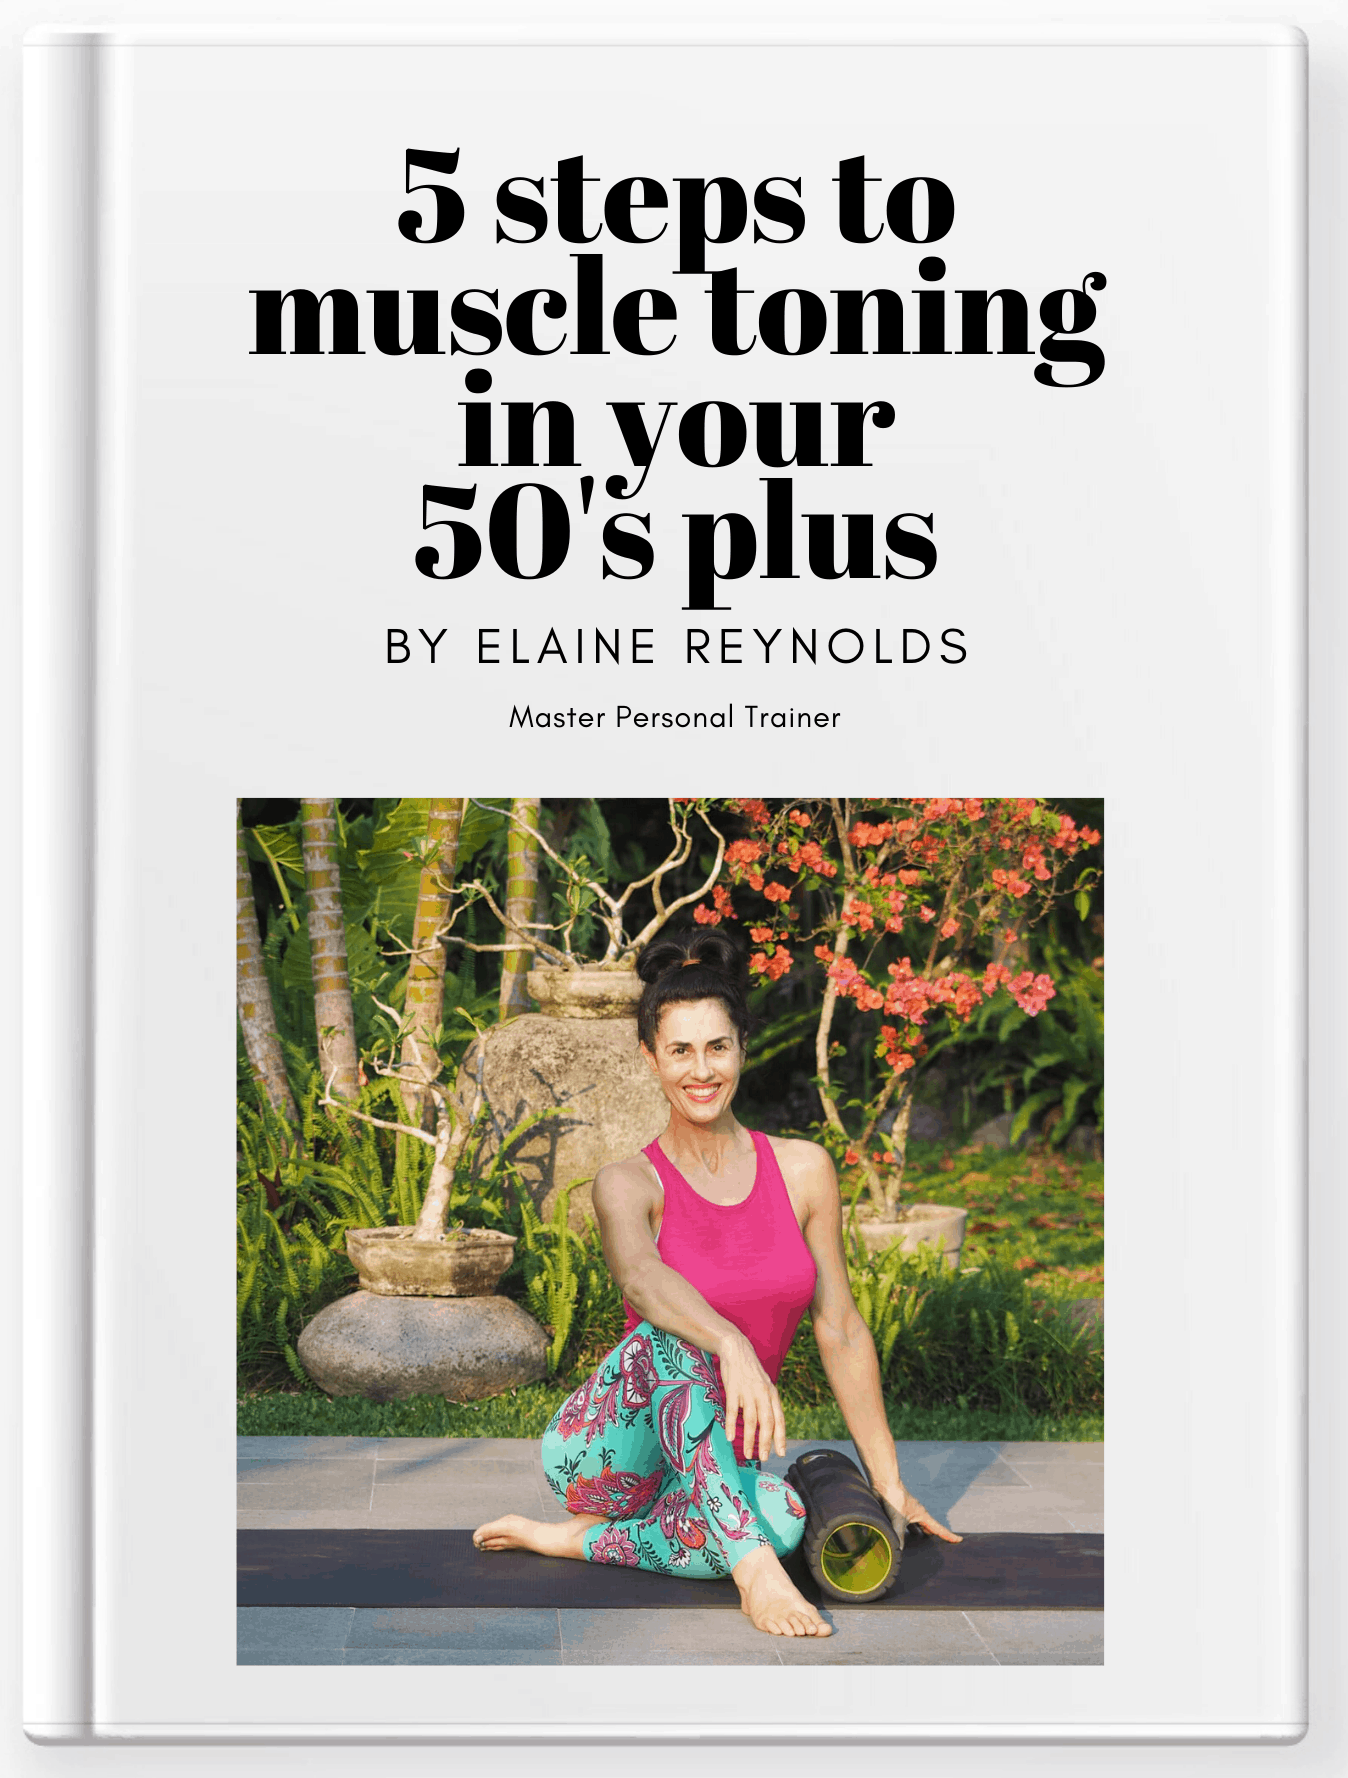 5 steps to muscle toning in your 50's book cover